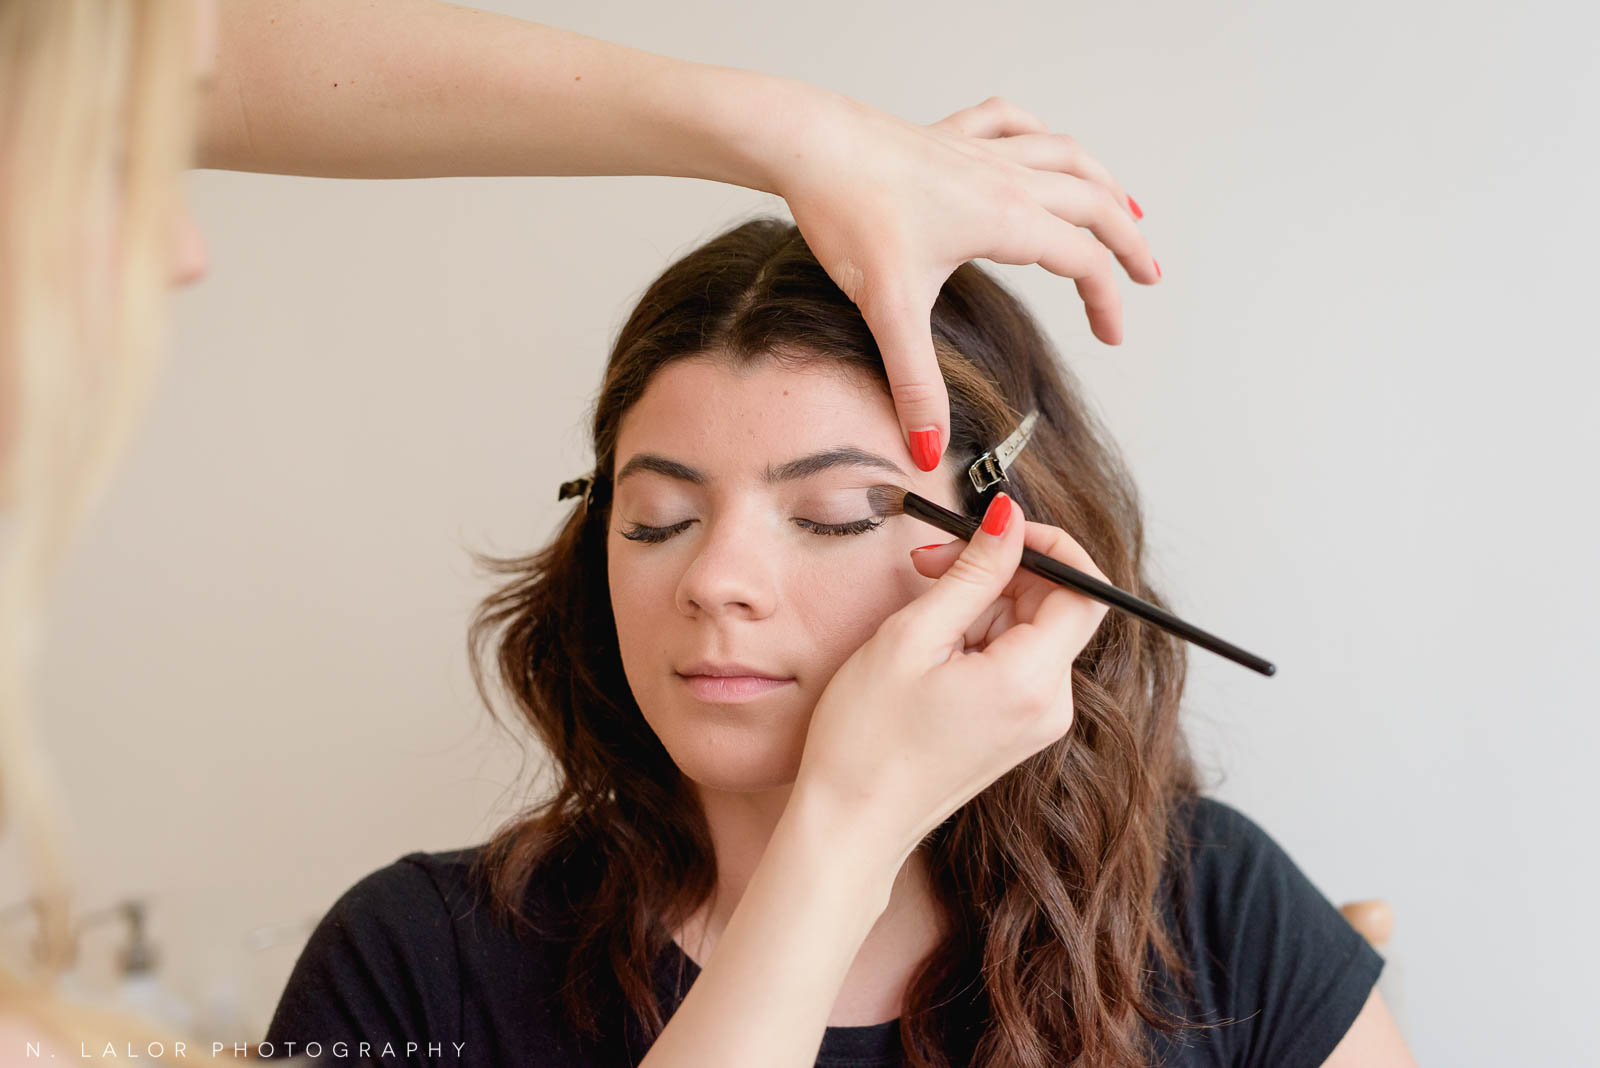 Applying simple eye shadow for a portrait photo session. Makeup tutorial. Photo by N. Lalor Photography, makeup tips by Haus of Pretty of Westport CT.